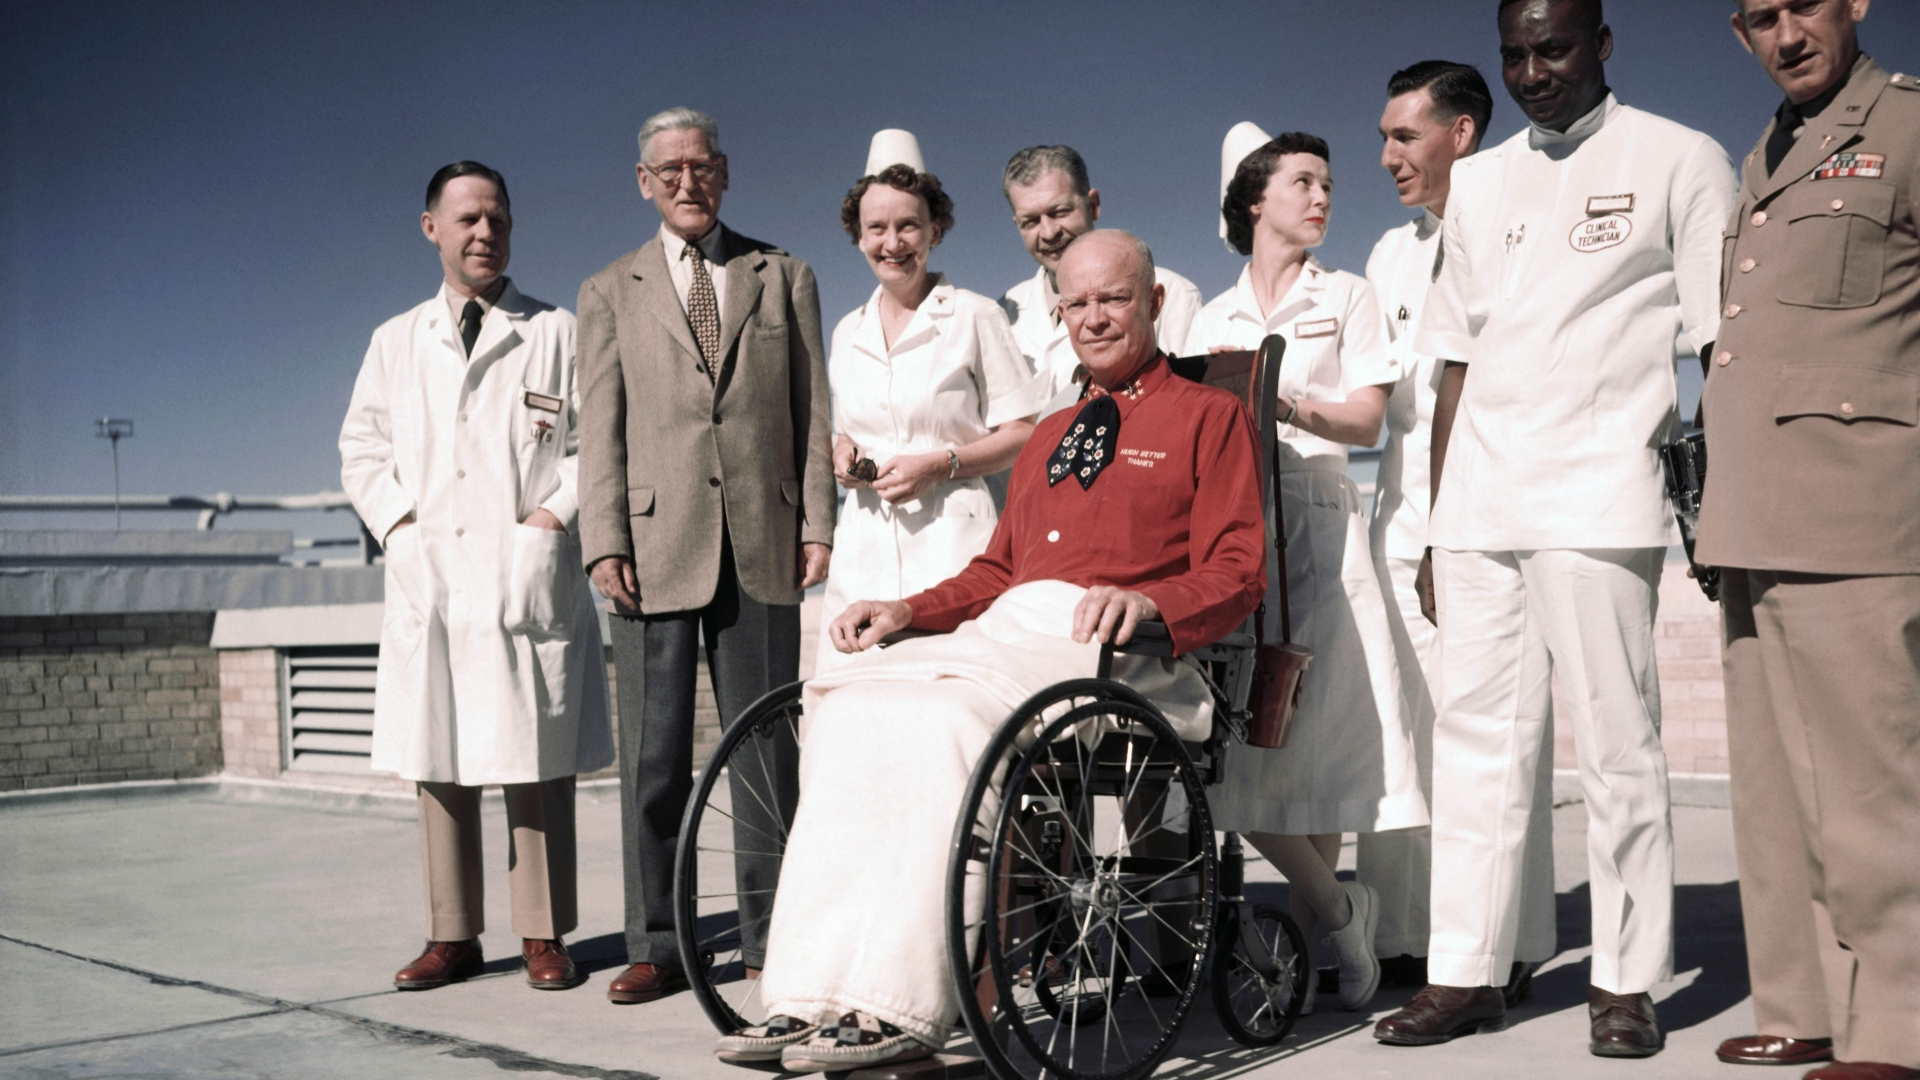 """President Eisenhower posing for first pictures since his heart attack. His red shirt reads """"Much Better Thanks"""" over the pocket. (Credit: Bettmann Archive/Getty Images)"""